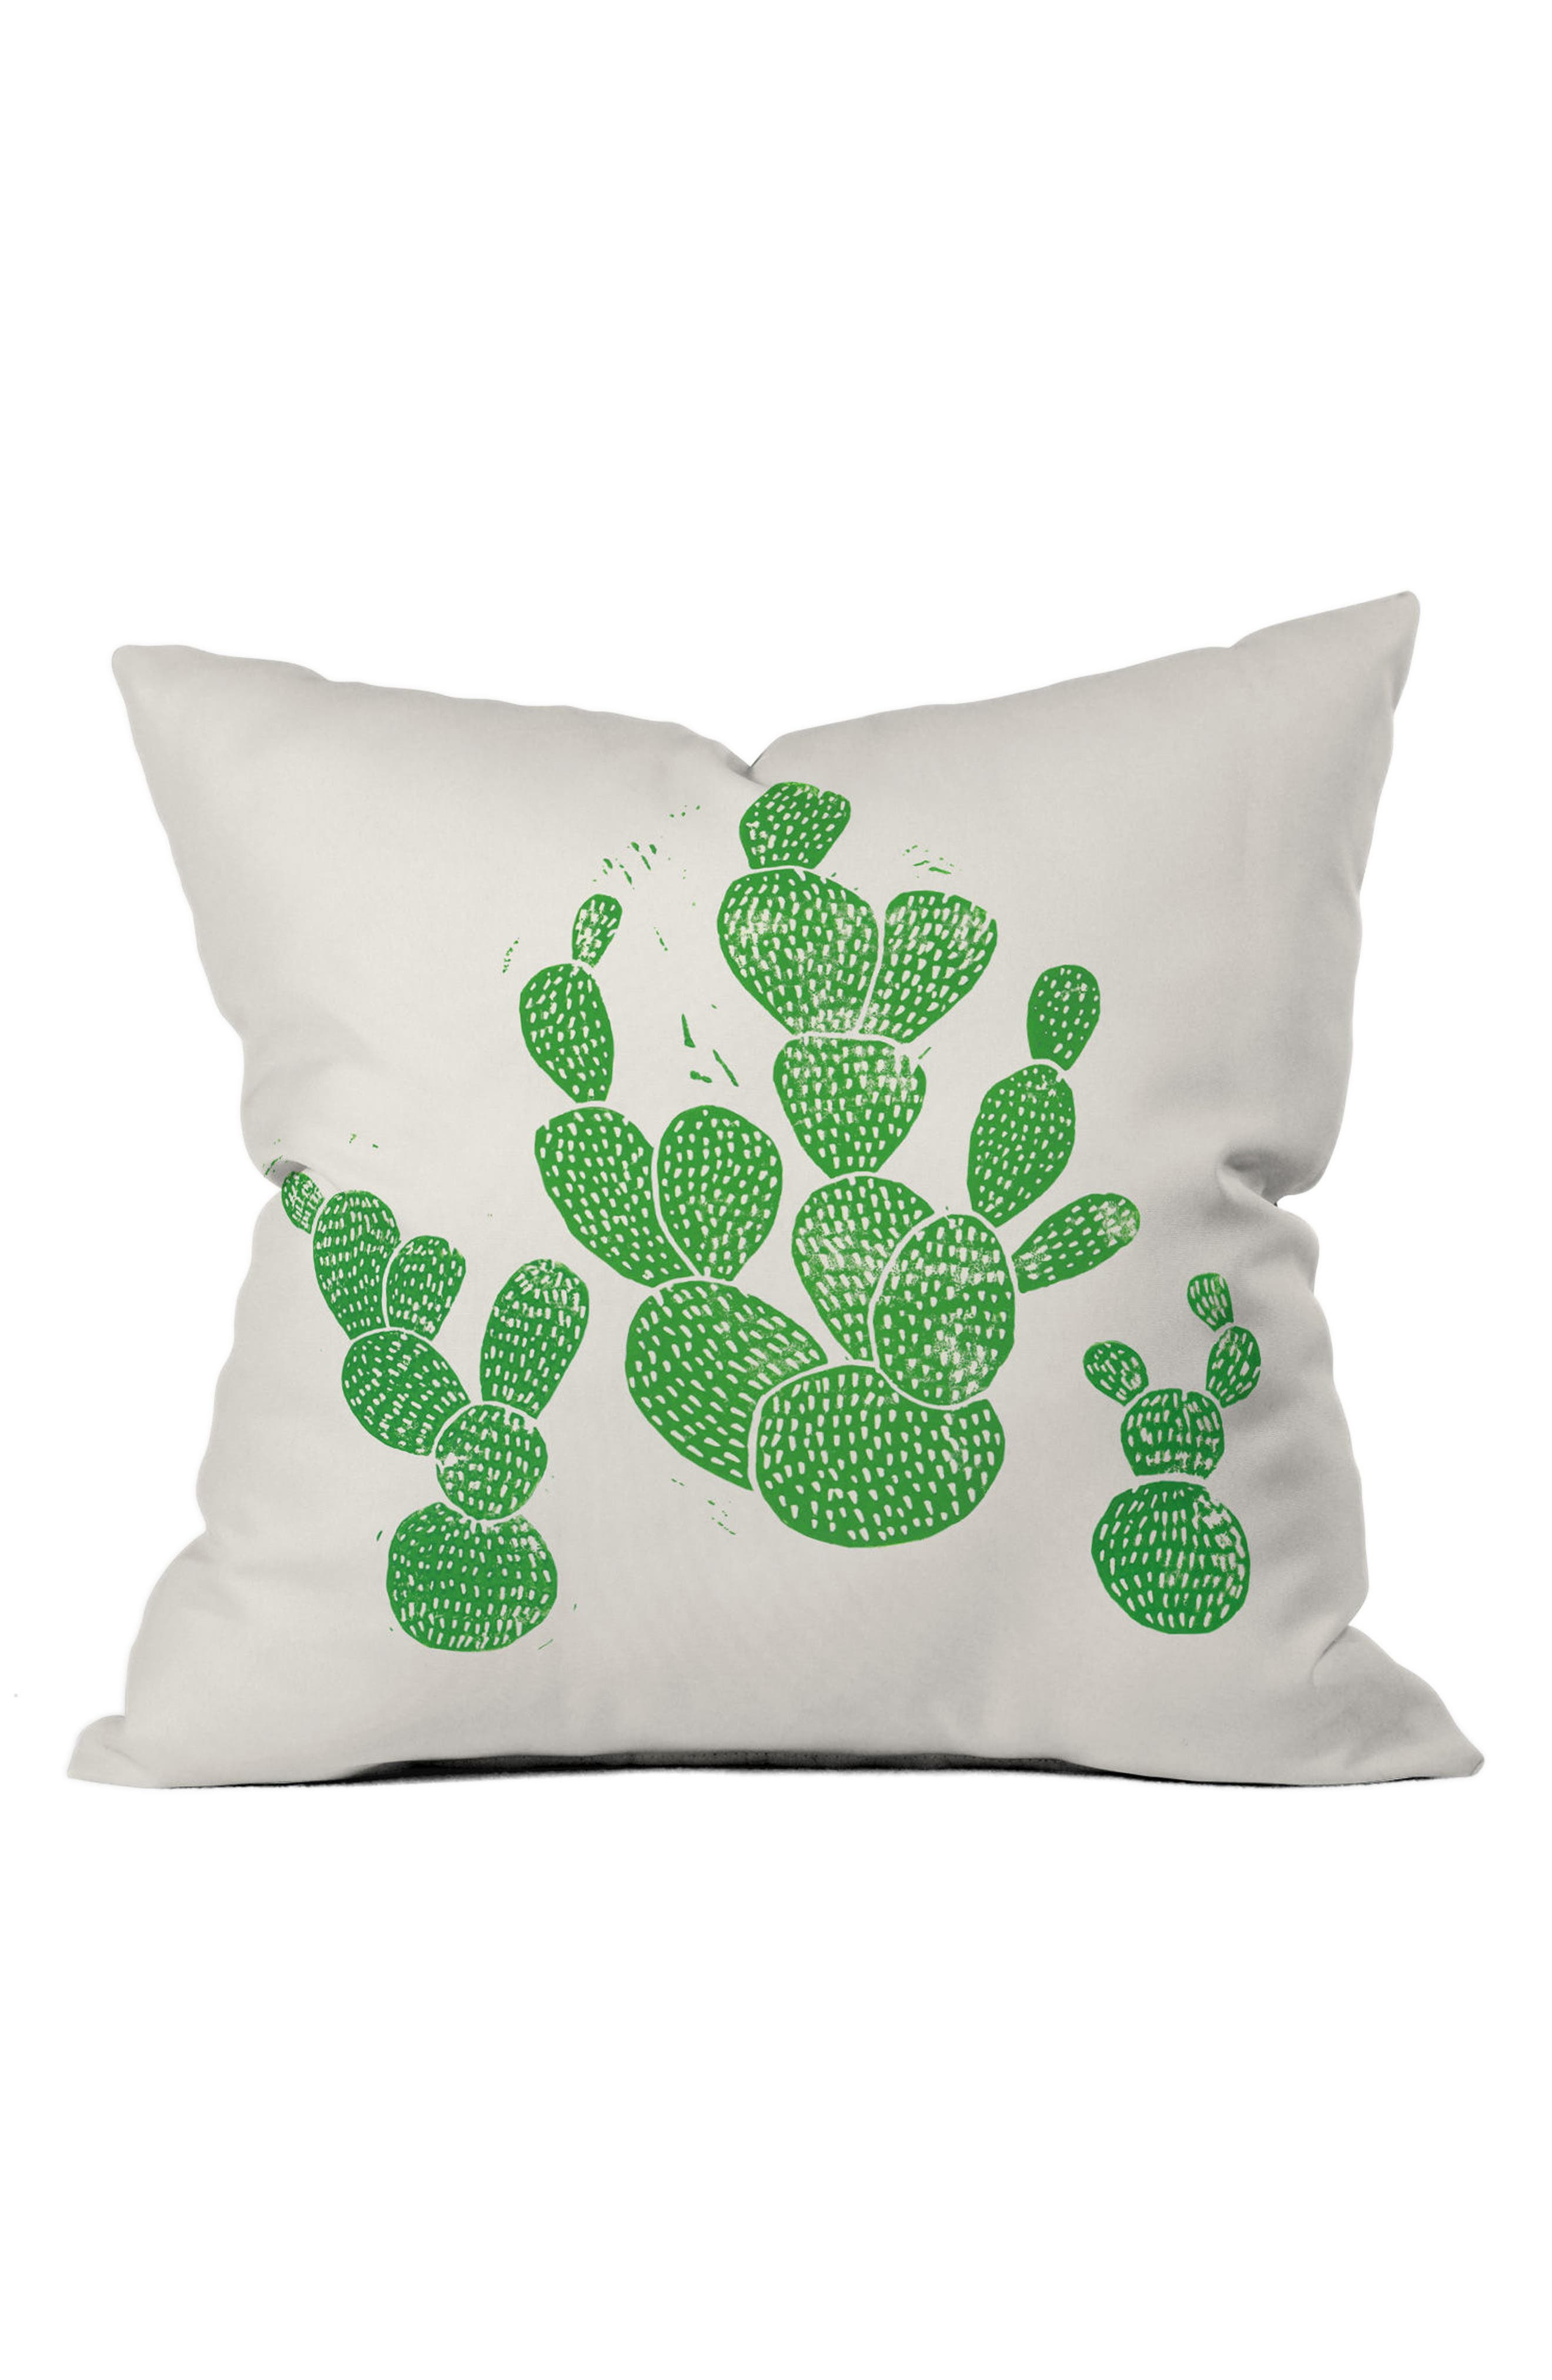 Main Image - DENY Designs Green Cacti Pillow